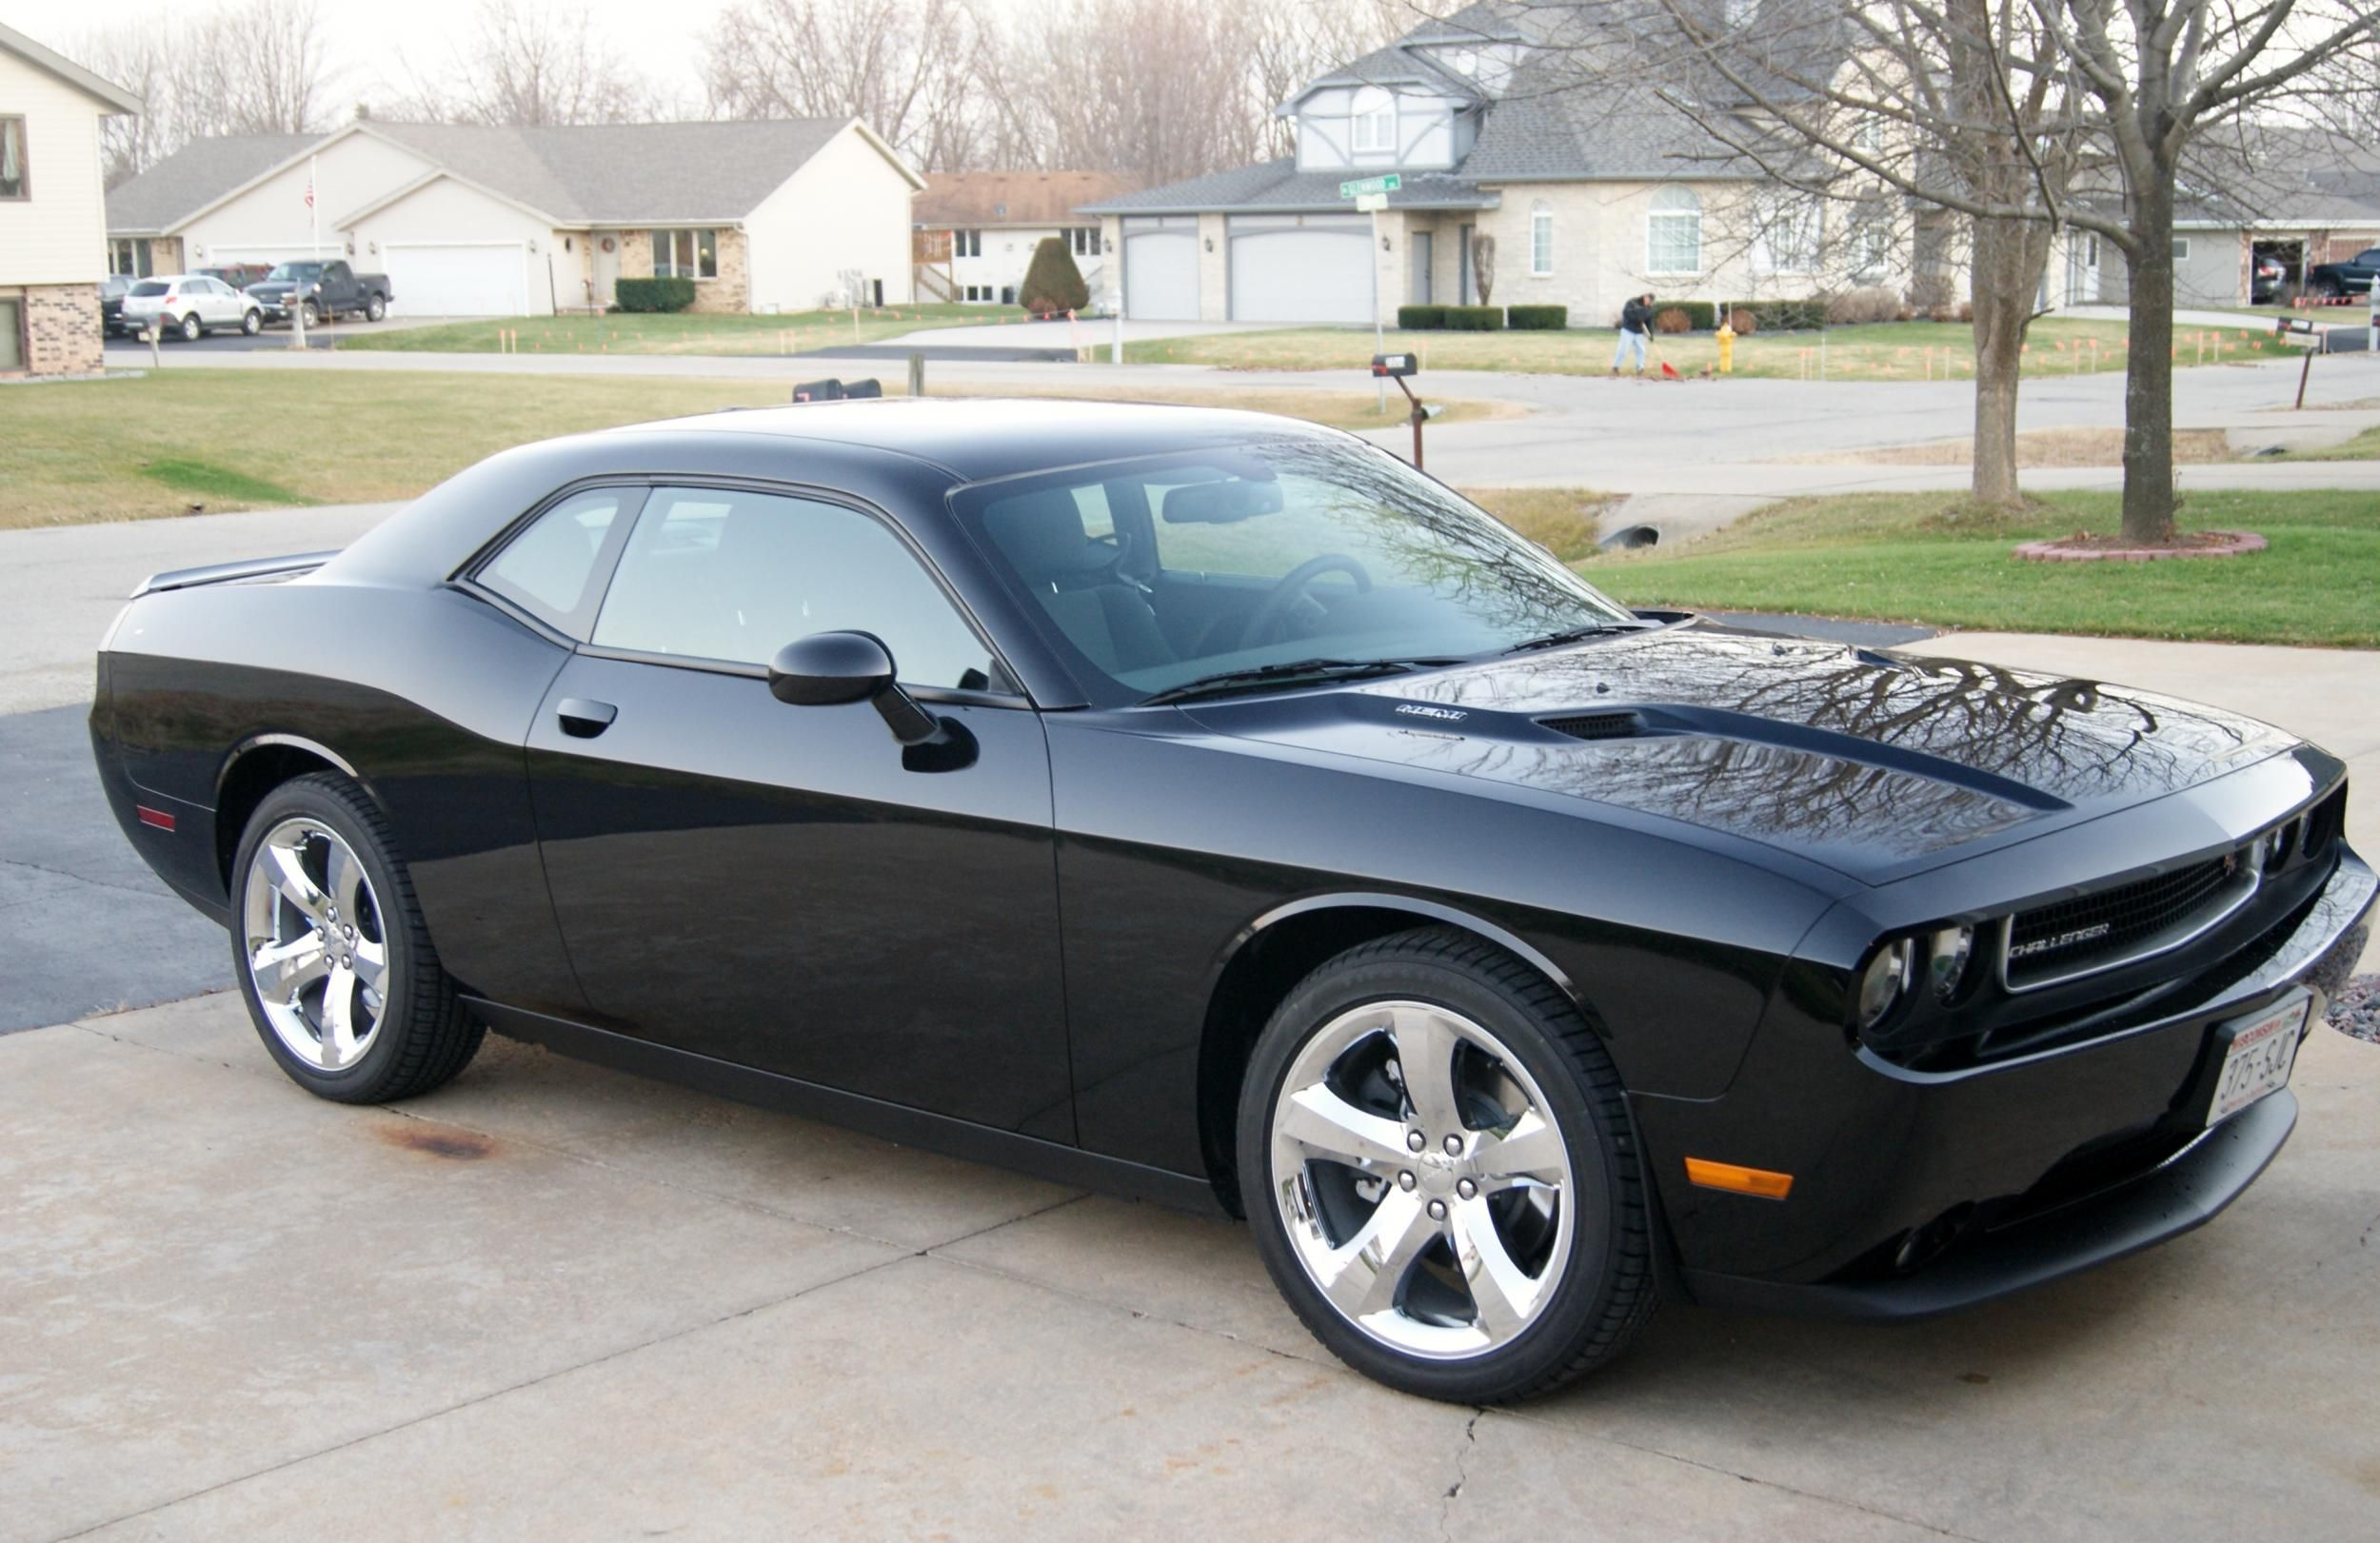 2013 dodge challenger black wallpaper http wallautos com 2013